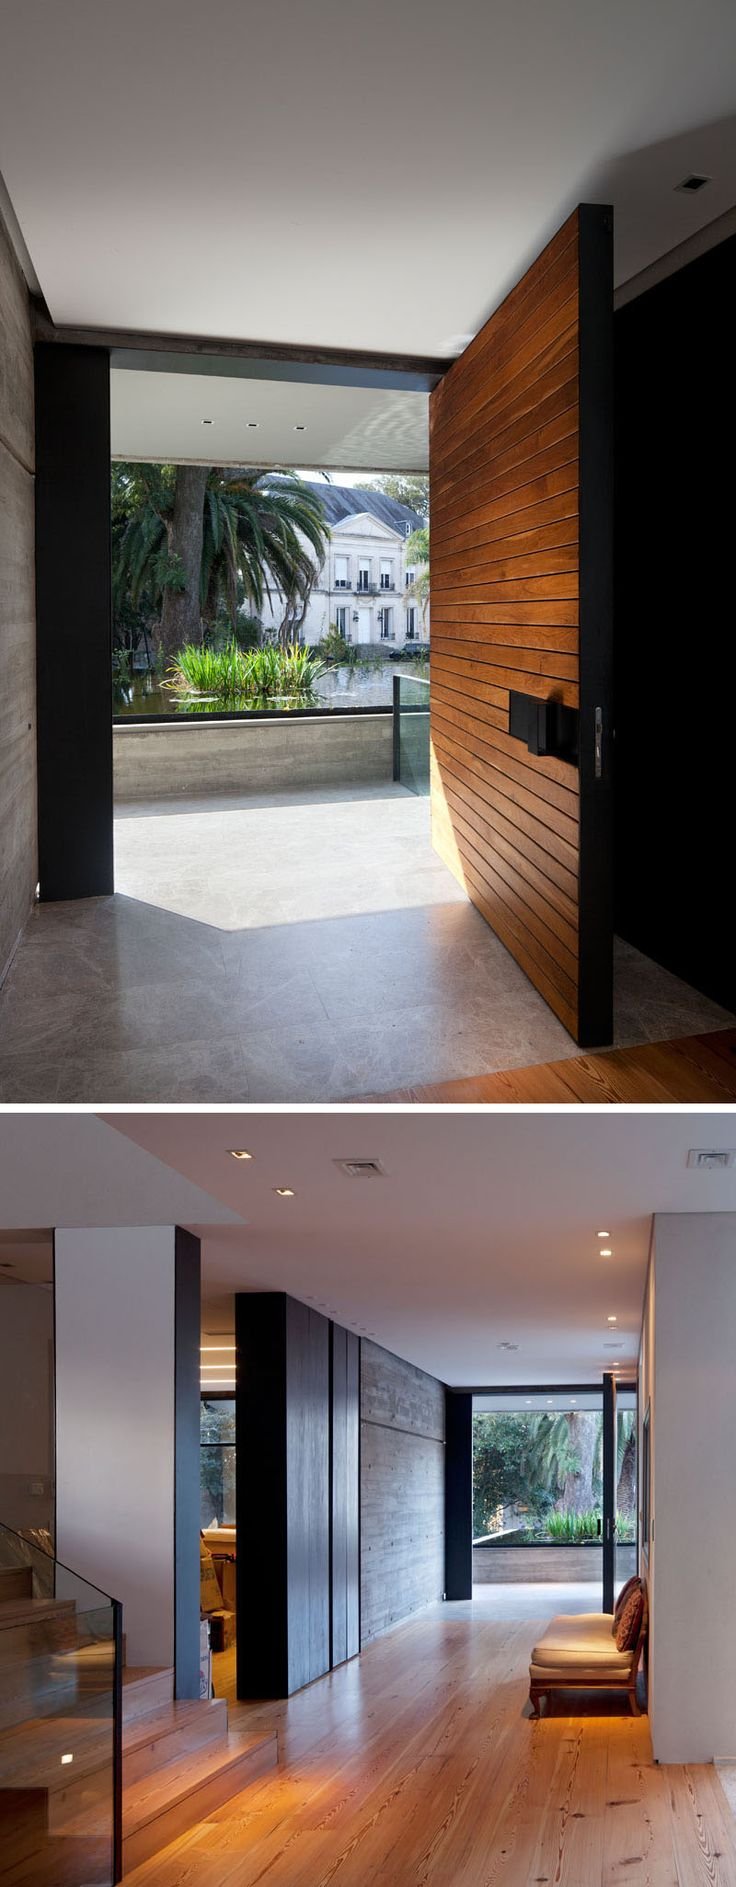 A large pivoting wood front door welcomes you to this modern concrete house, and a foyer provides access to the various levels of the house. #PivotingDoor #WoodFrontDoor #ModernWoodDoor #Foyer